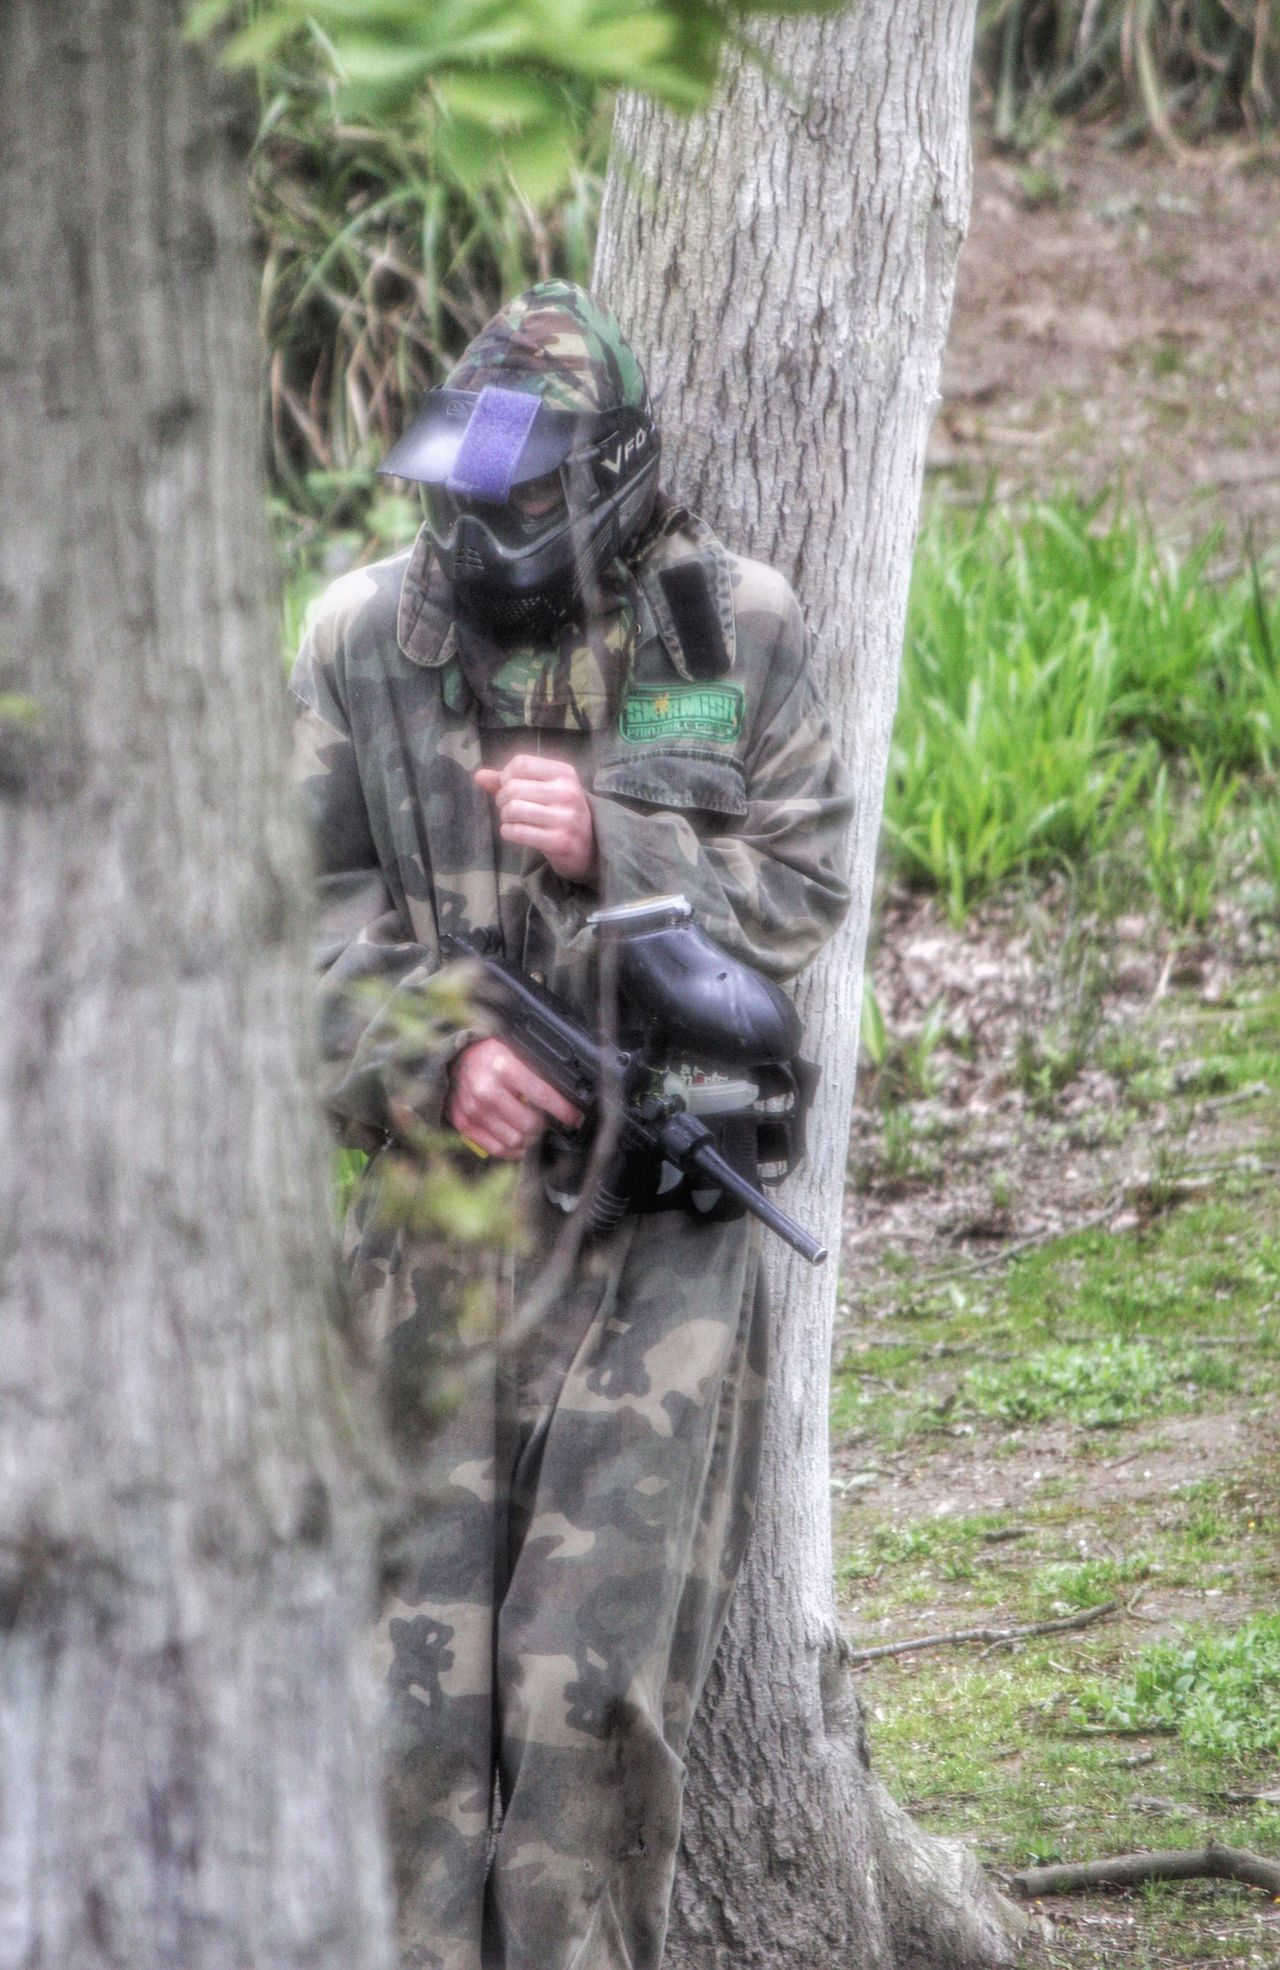 Paintball Paintballing Paintball Photography Paintball Team Paintballtime Paintballs Paintballing #thuglife. Paintball *-* Paintballgun Paintballin!!! Paintball Mask Paintballday Paintball Gun PaintballMask Paintball Event Paintball Camouflage Camouflage Camourflauge Camourflage Camourflage Clothing Playing Paintballing